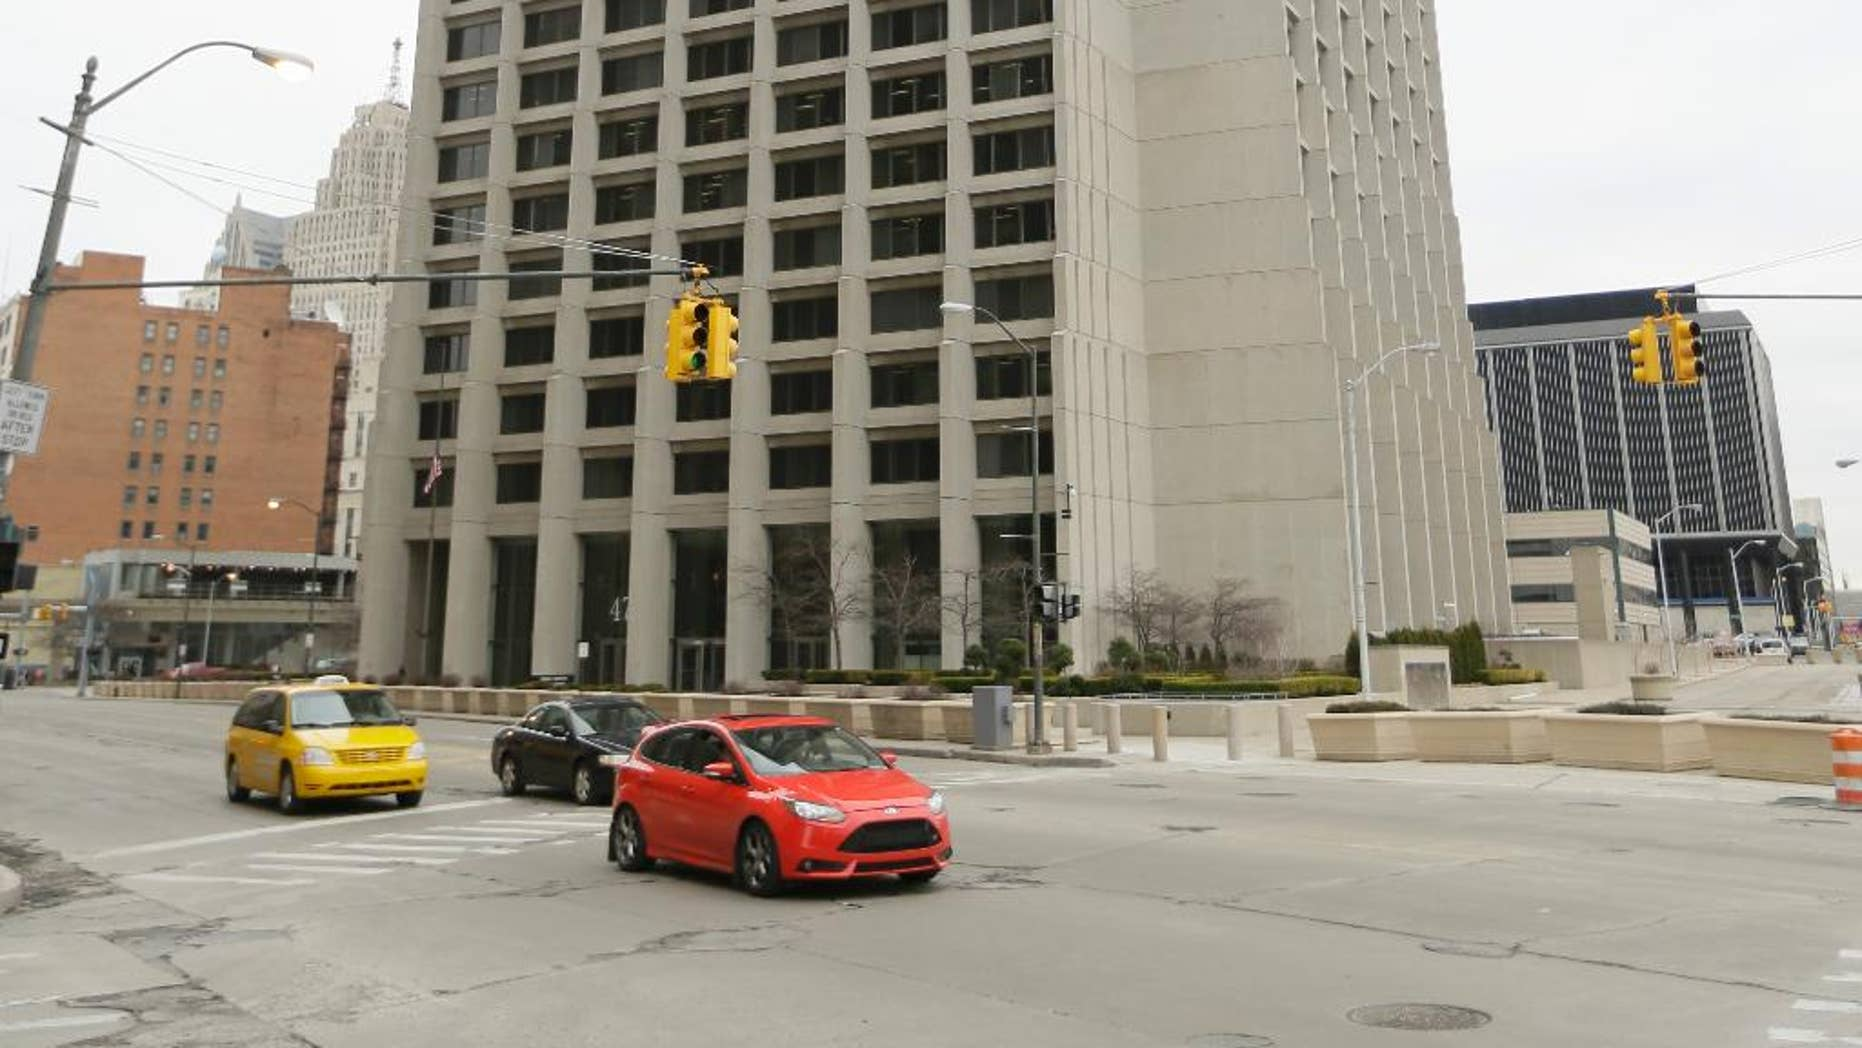 This Friday, April 3, 2015 photo shows the Patrick V. McNamara Federal Building in Detroit. Gary Mikulich, accused of planting a bomb outside of the building four years ago, may never stand trial despite extraordinary efforts to improve his mental health. (AP Photo/Carlos Osorio)